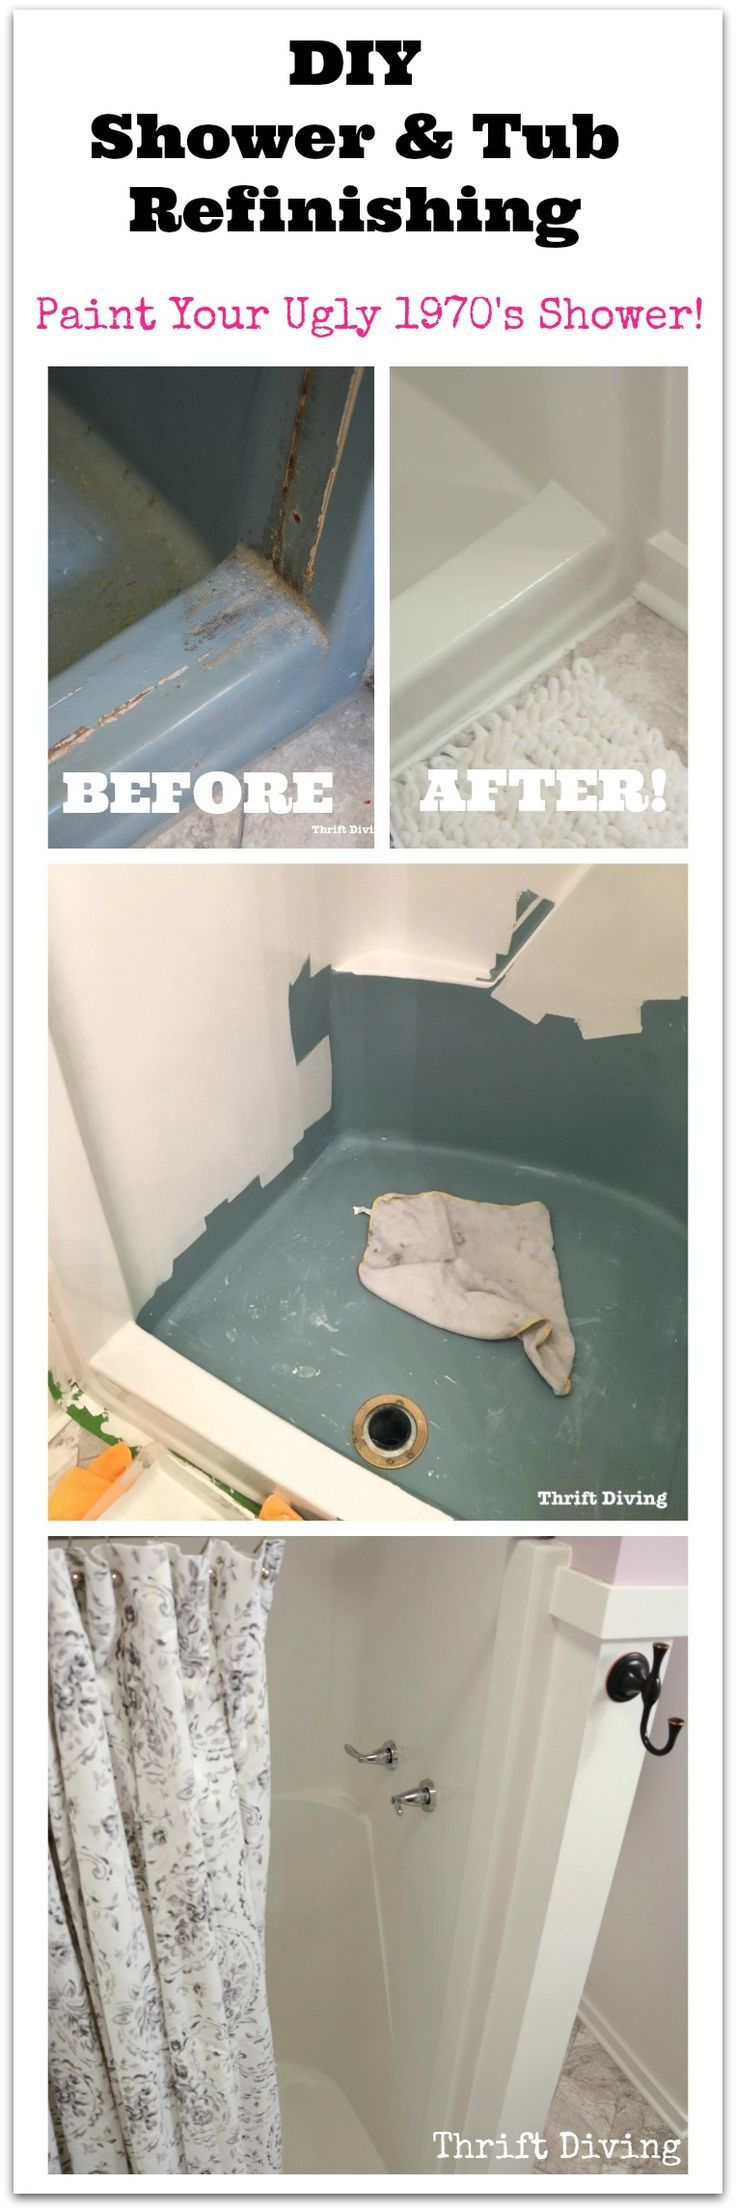 Fantastic Paint For A Bathtub Huge Bathtub Refinishing Service Clean Companies That Refinish Bathtubs Bathtub Repair Youthful Bathtub Resurfacing Cost WhiteTub Glaze The 25  Best Tub Refinishing Ideas On Pinterest | Bath Refinishing ..